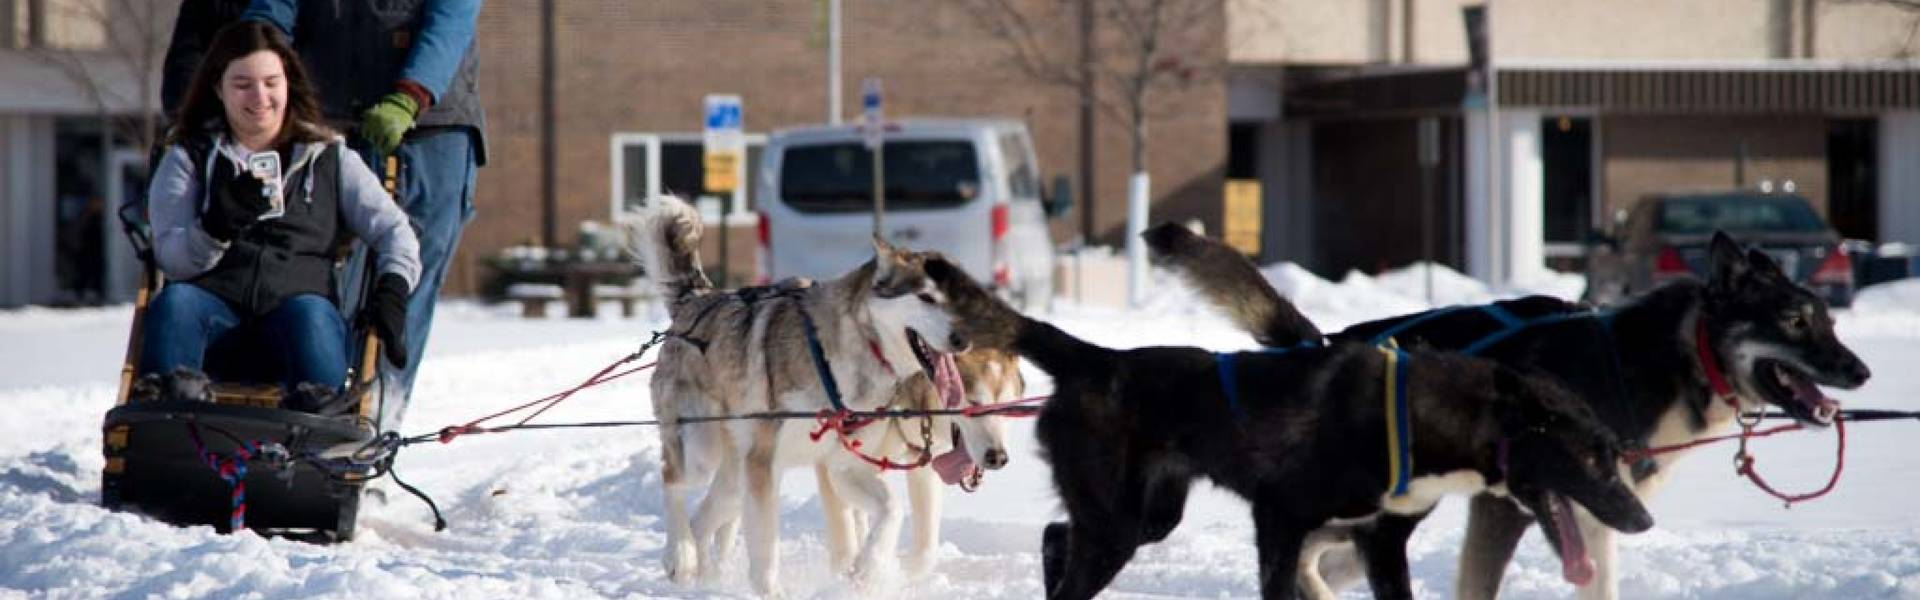 Sled dogs by residence halls for Winter Carnival